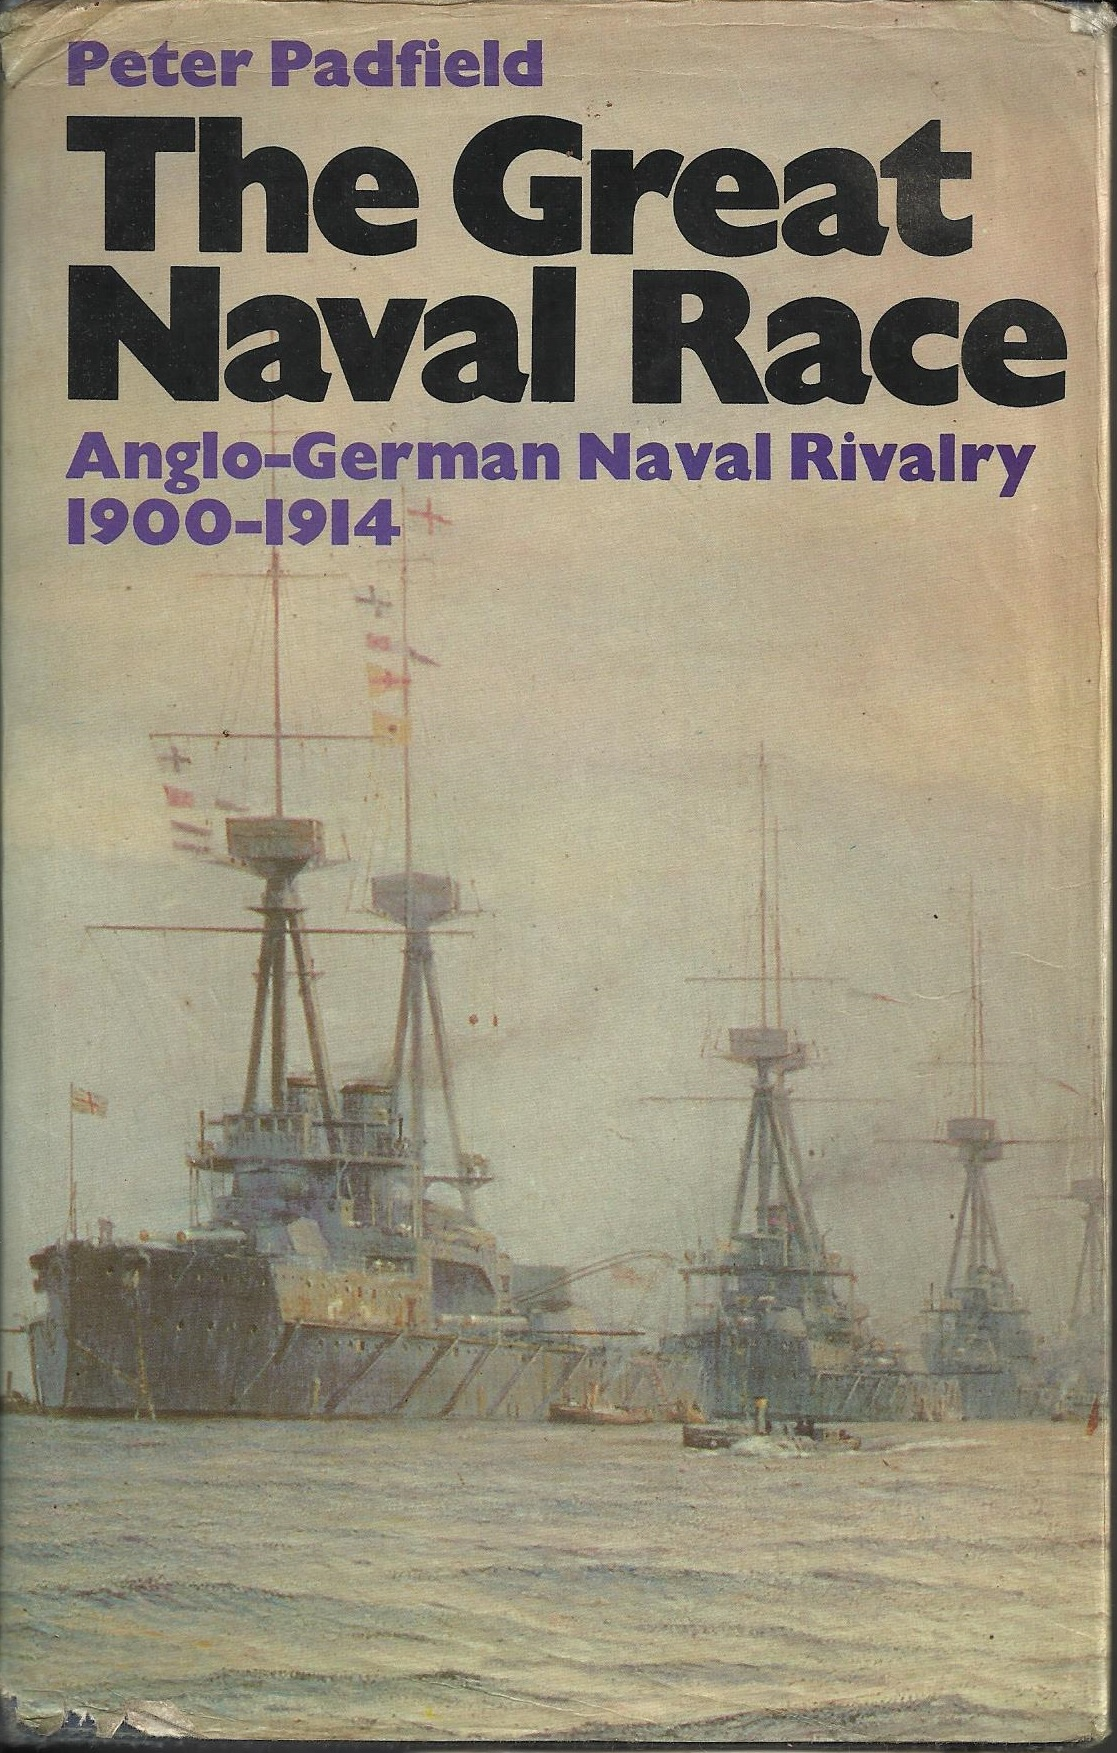 the arms race and the naval race essay Causes( also from janki mam's book) arms race the naval race between britain and germany was intensified by the 1906 launch of hms dreadnought she was revolutionary, rendering all previous battleships obsolete britain had also maintained a large naval lead in other areas particularly over.